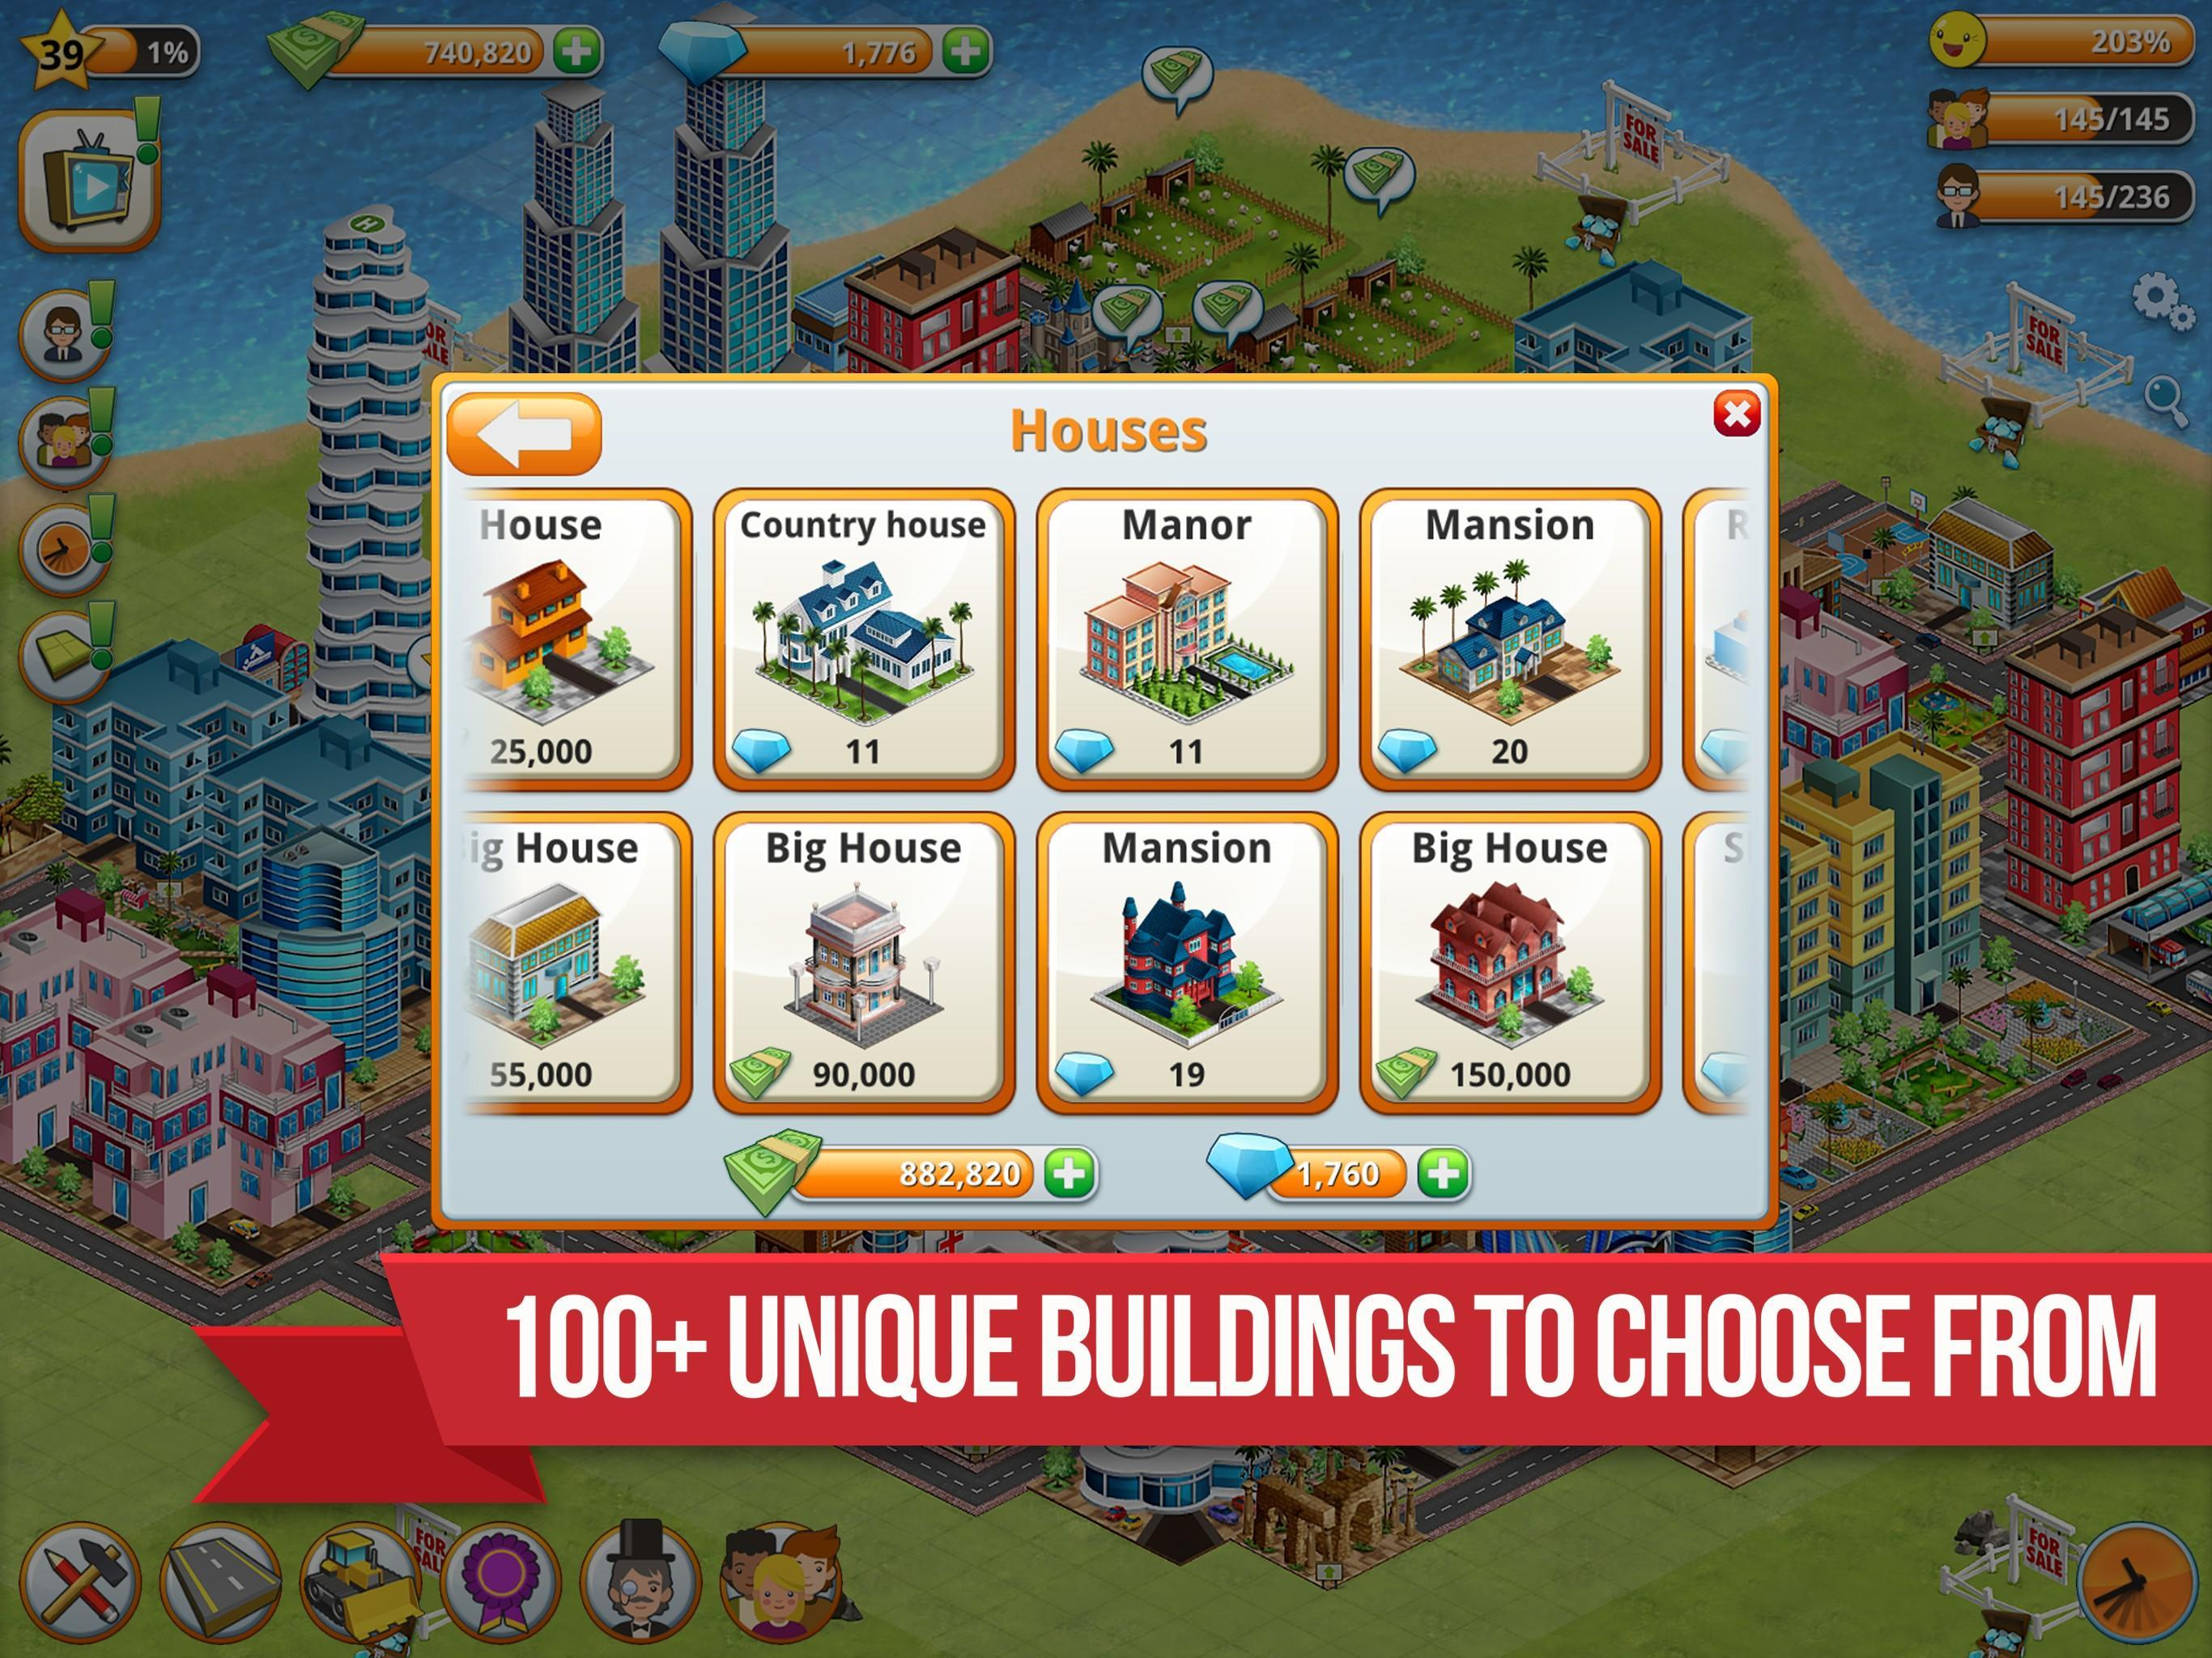 Mendonlot game Village City - Island Simulation v1.9.3